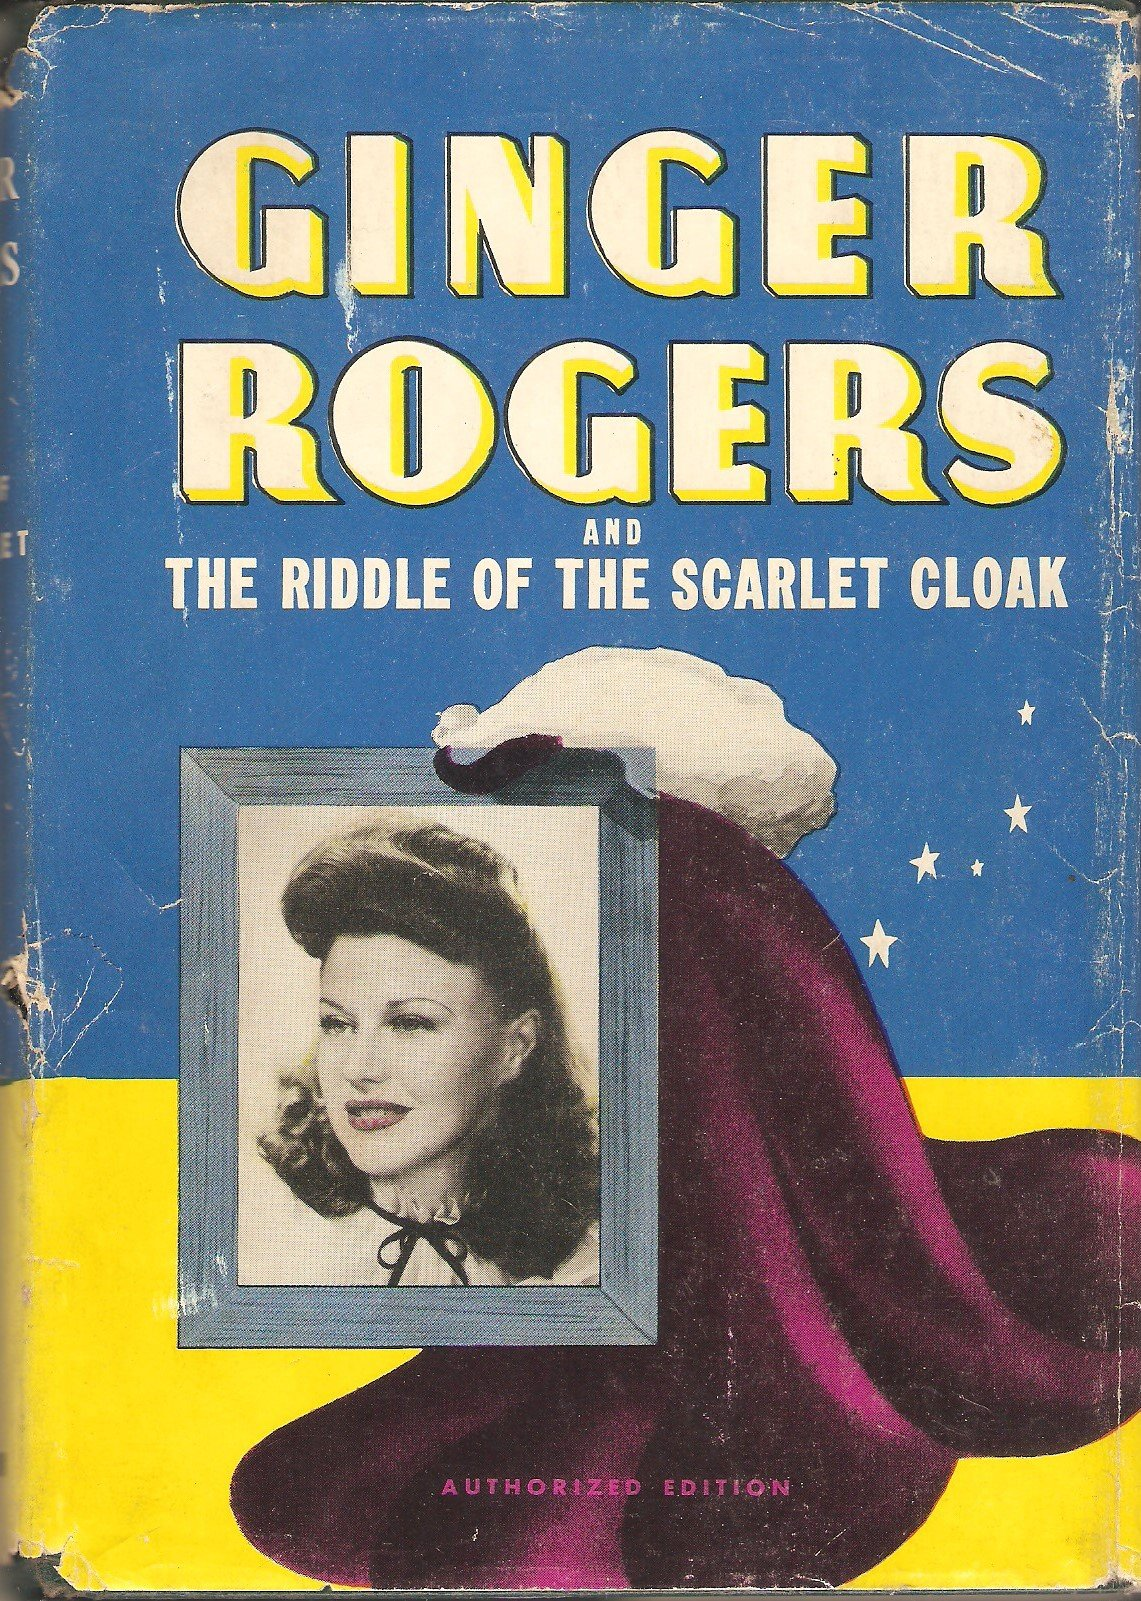 Ginger Rogers and the Riddle of the Scarlet Cloak: An Original Story Featuring Ginger Rogers Famous Motion-Picture Star as the Heroine, Lela E. Rogers